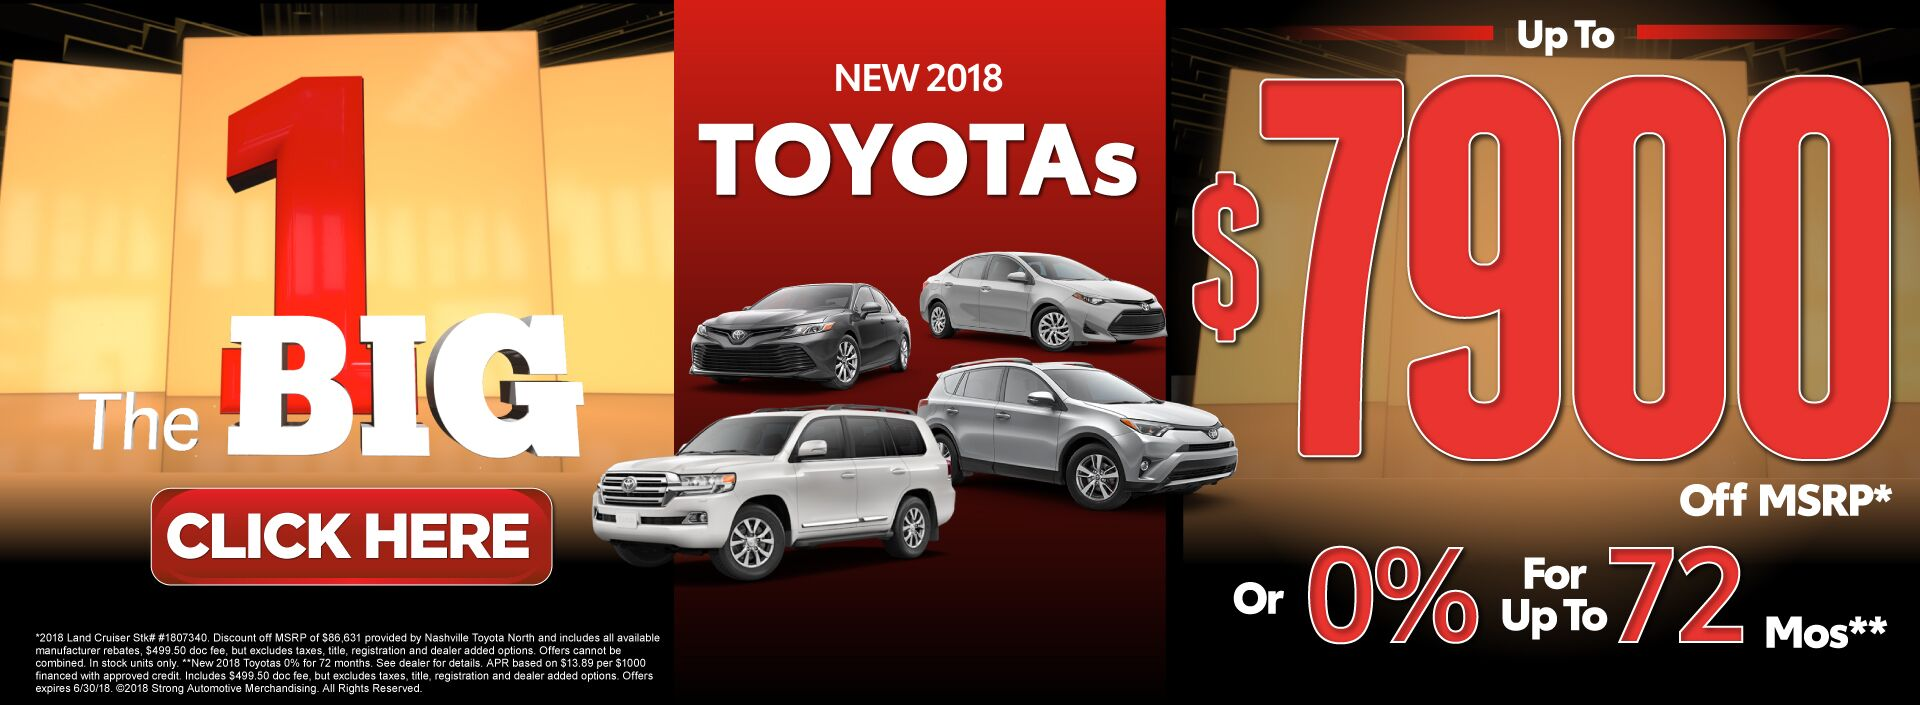 Toyota Dealership Nashville Tn Used Cars Nashville